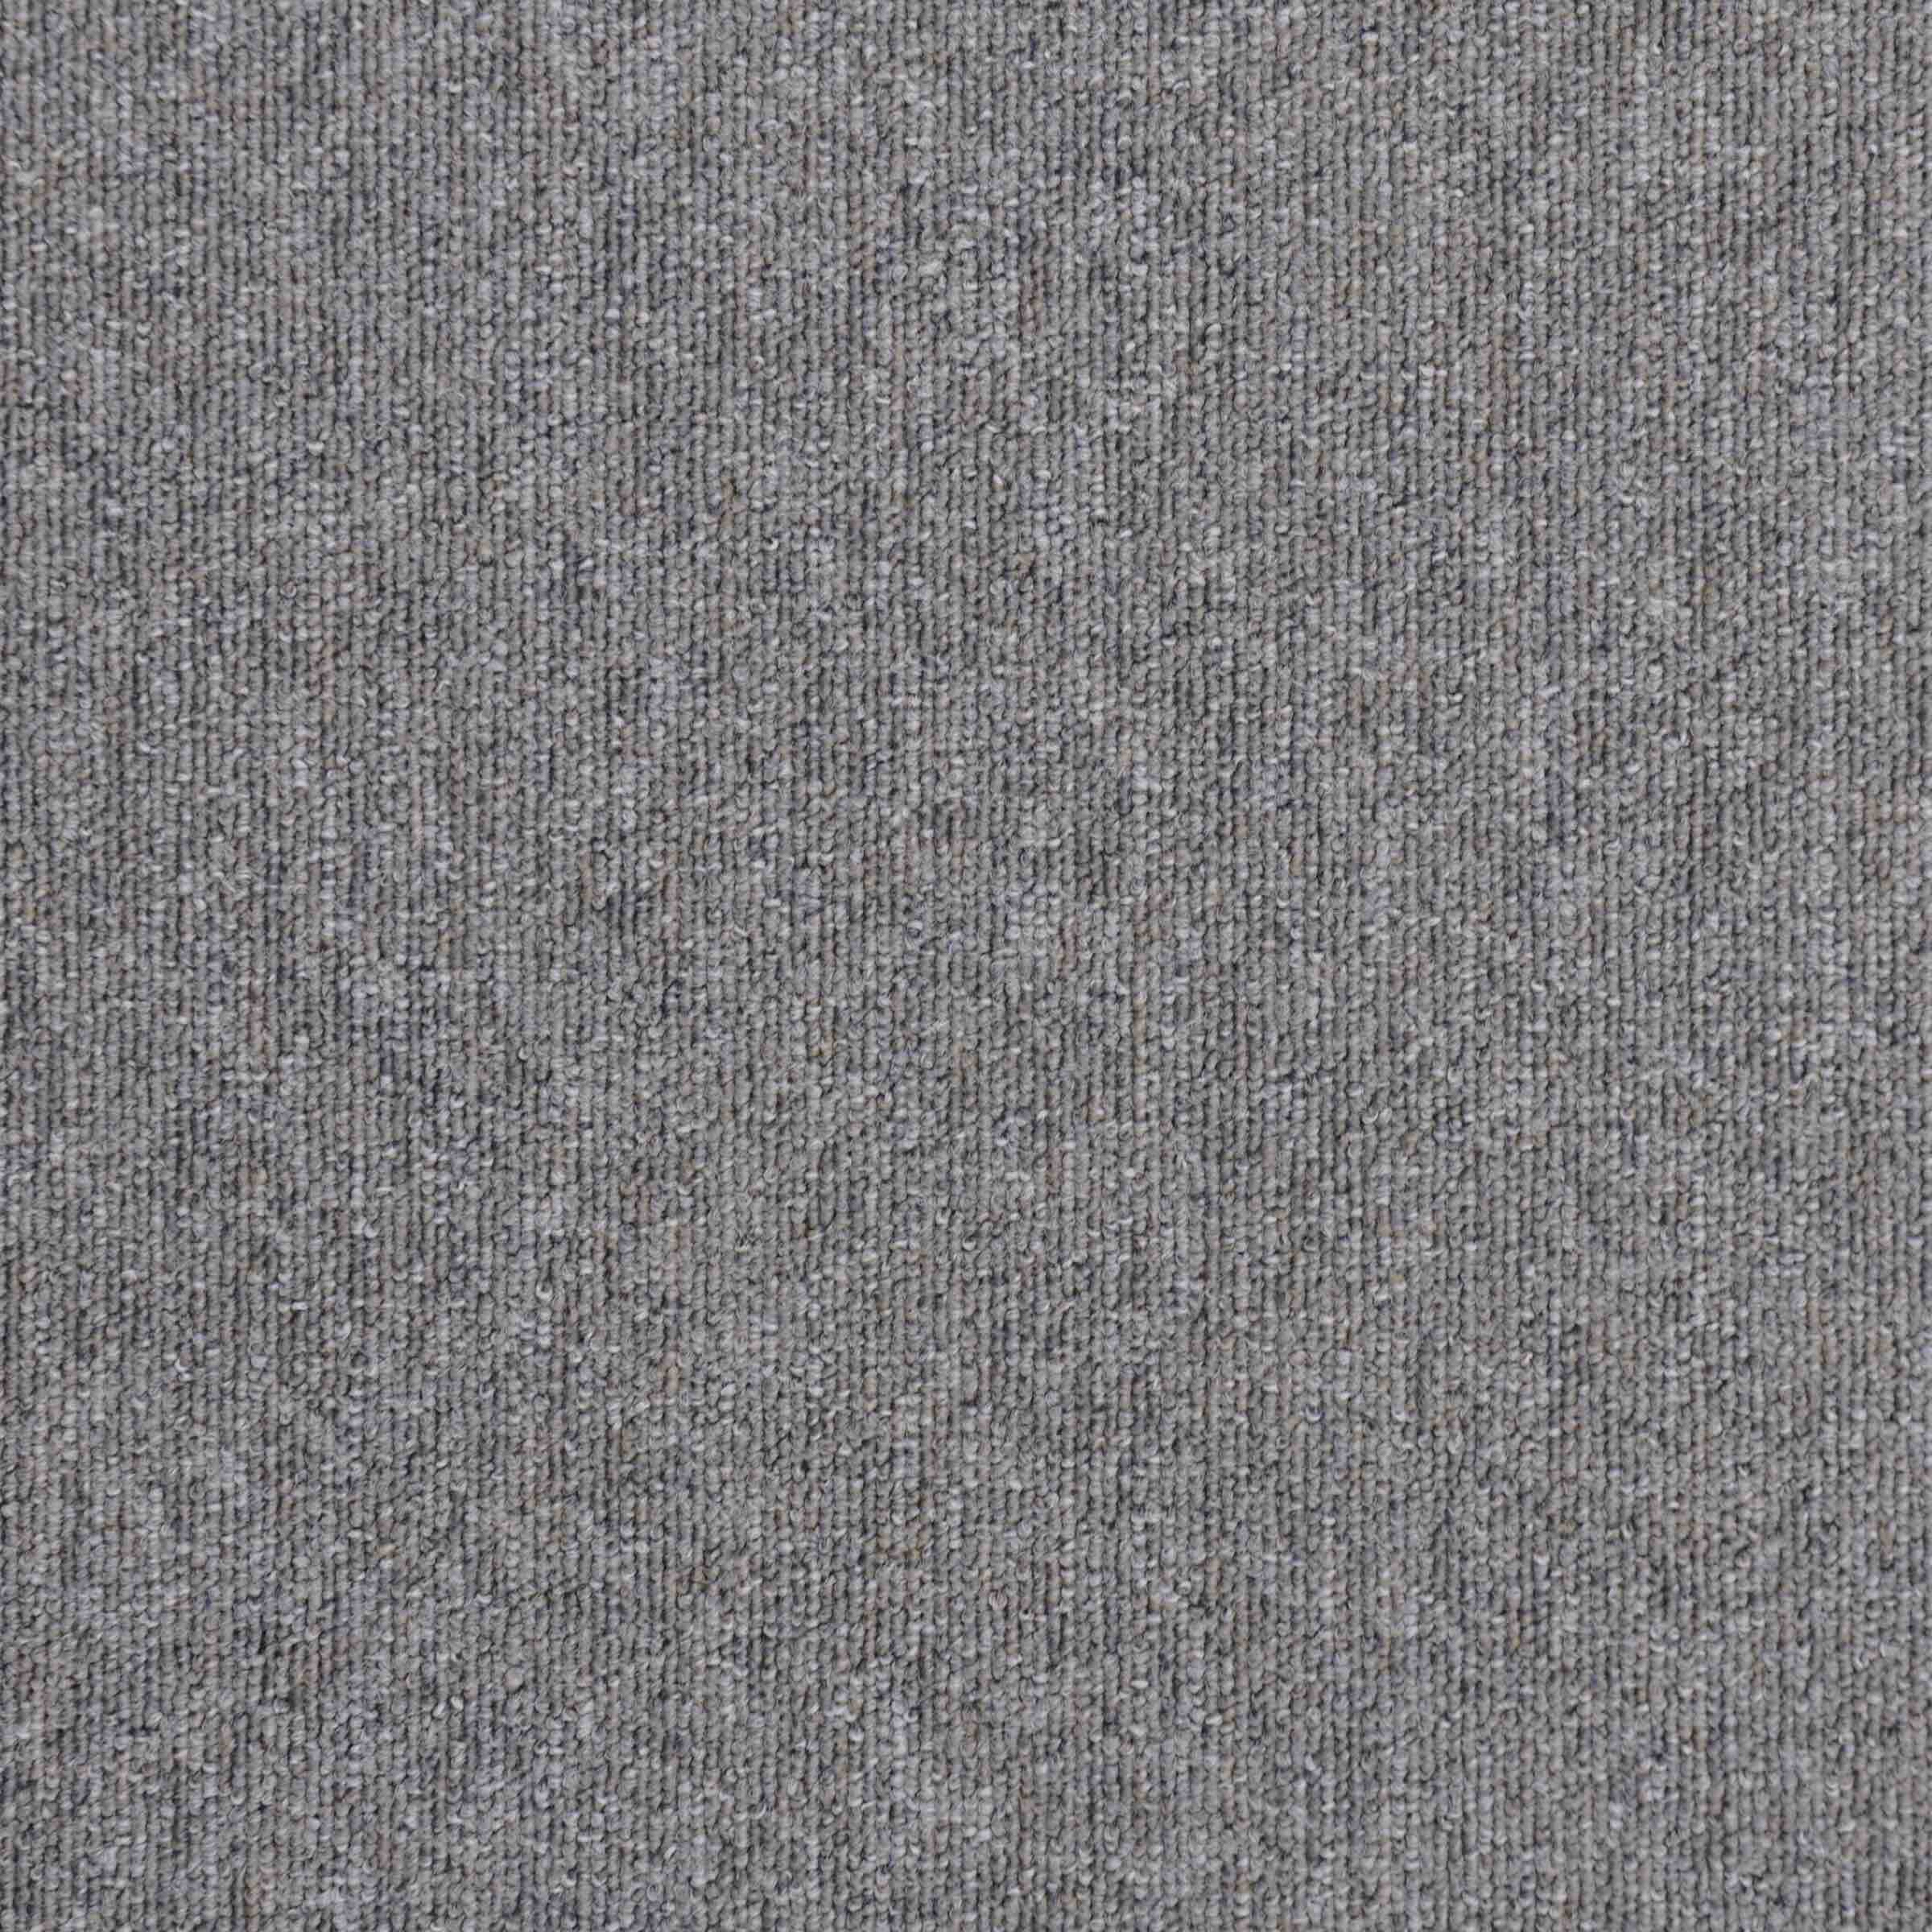 Vital | 8302 | Paragon Carpet Tiles | Commercial Carpet Tiles